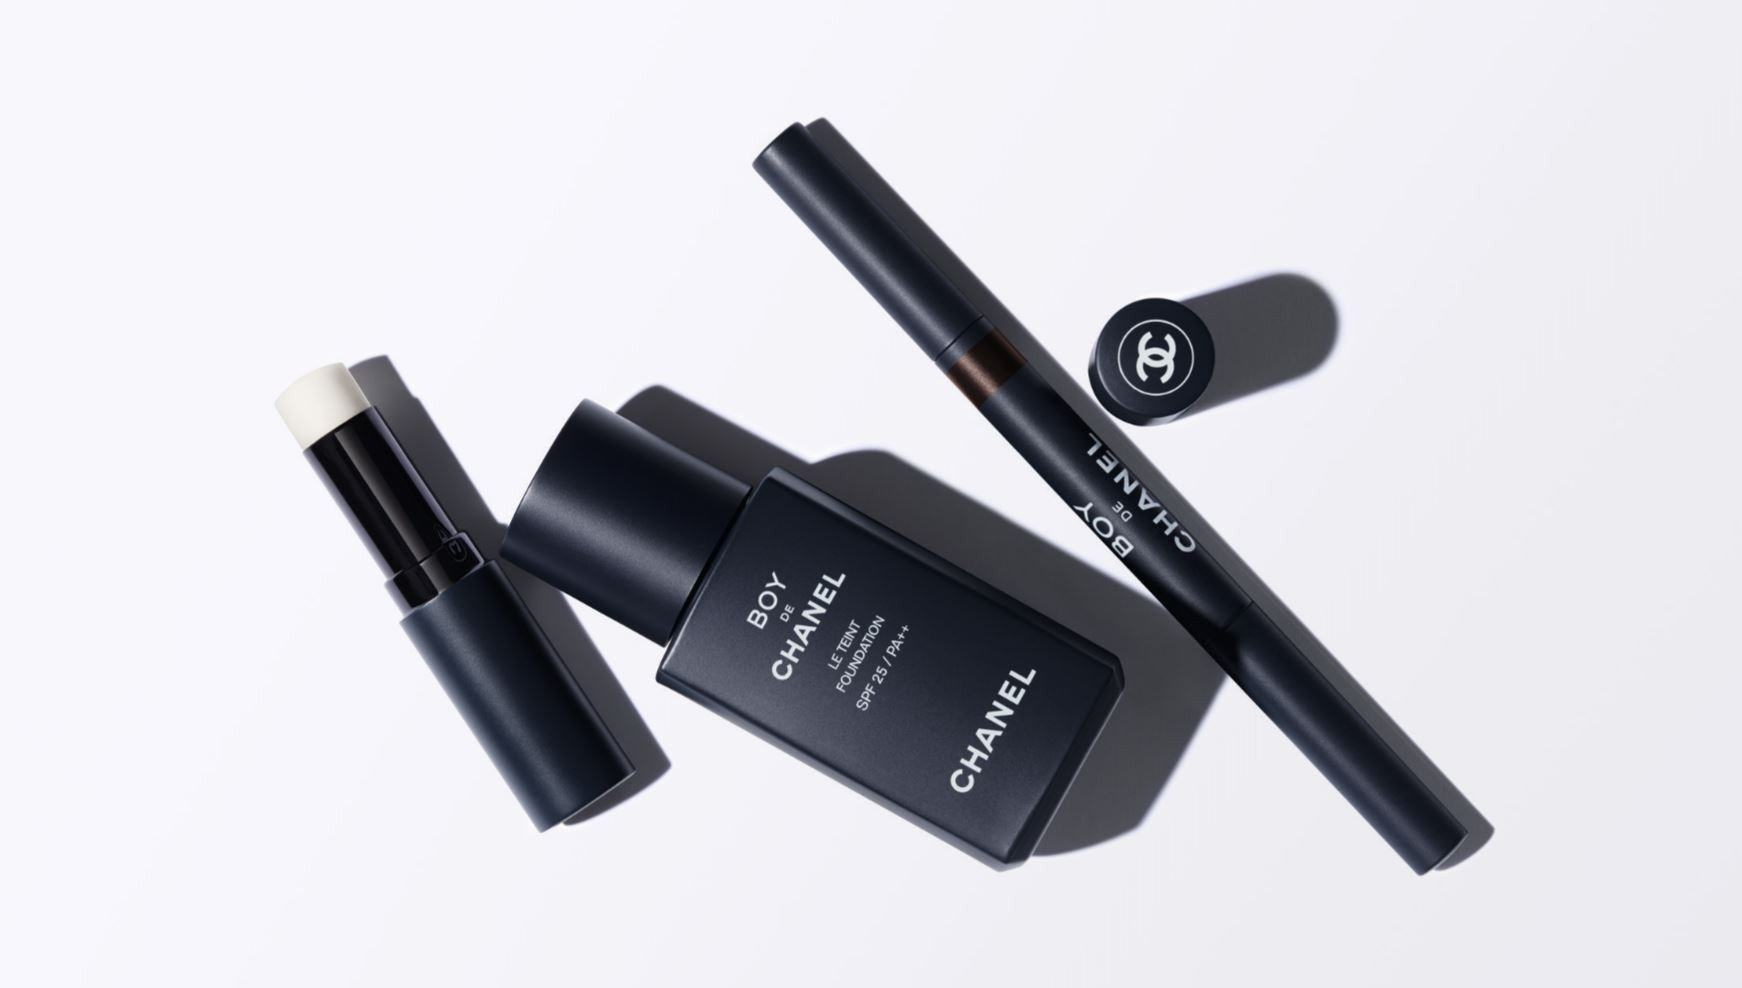 a98e829fc314 Chanel to launch Boy de Chanel – a makeup line for men | South China  Morning Post